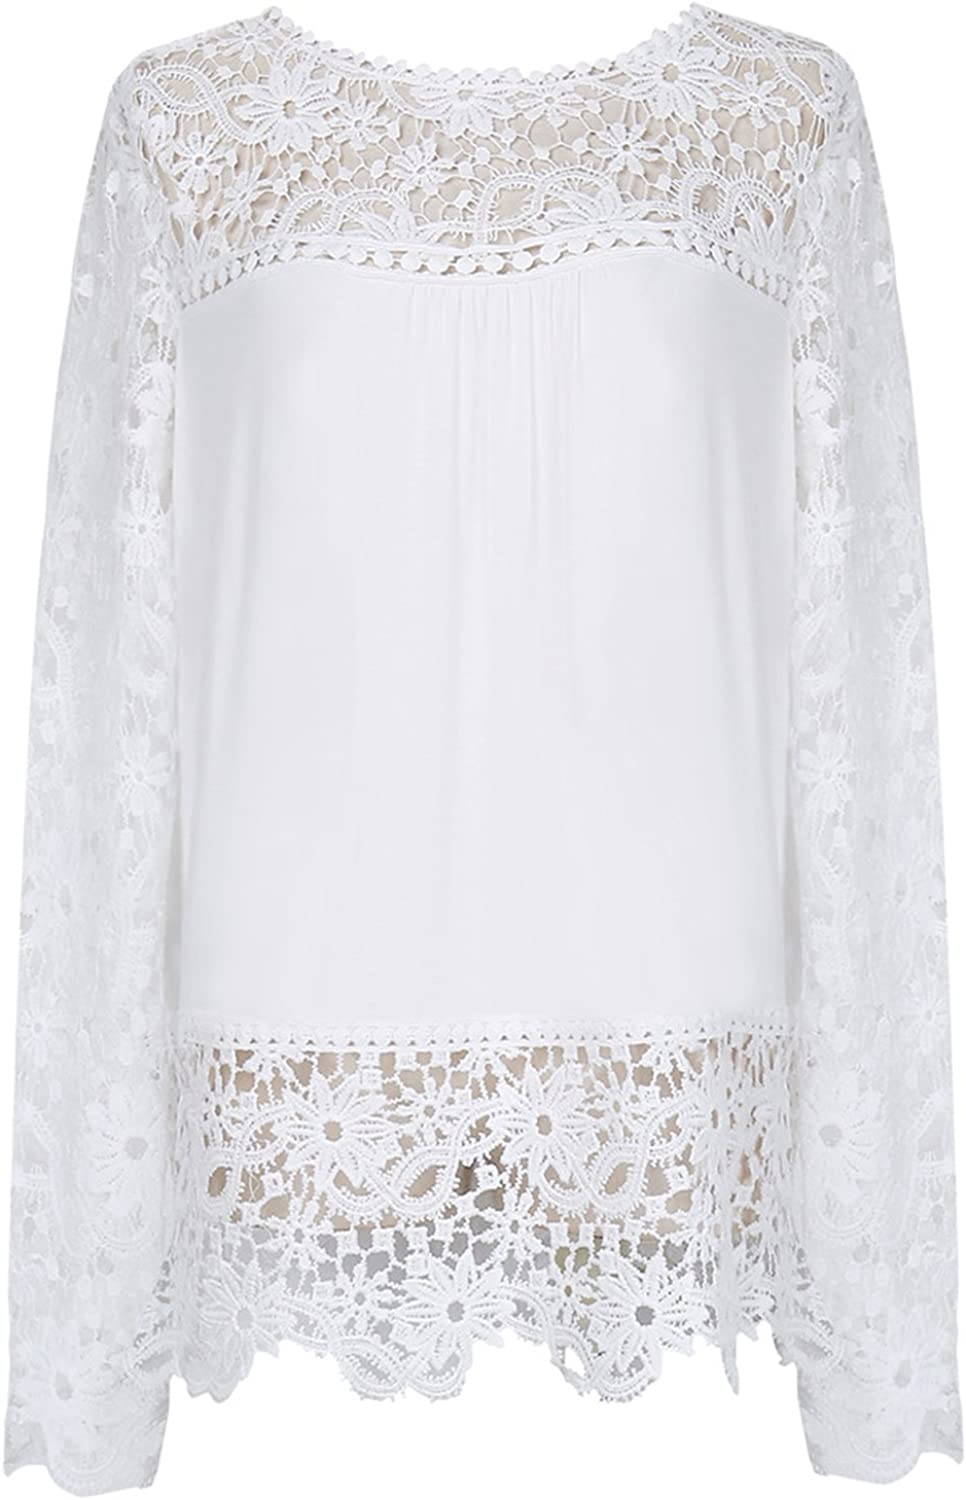 Unomatch Women Top Lace Decorated Loose Waist Shirt and Blouse White (WHITE)